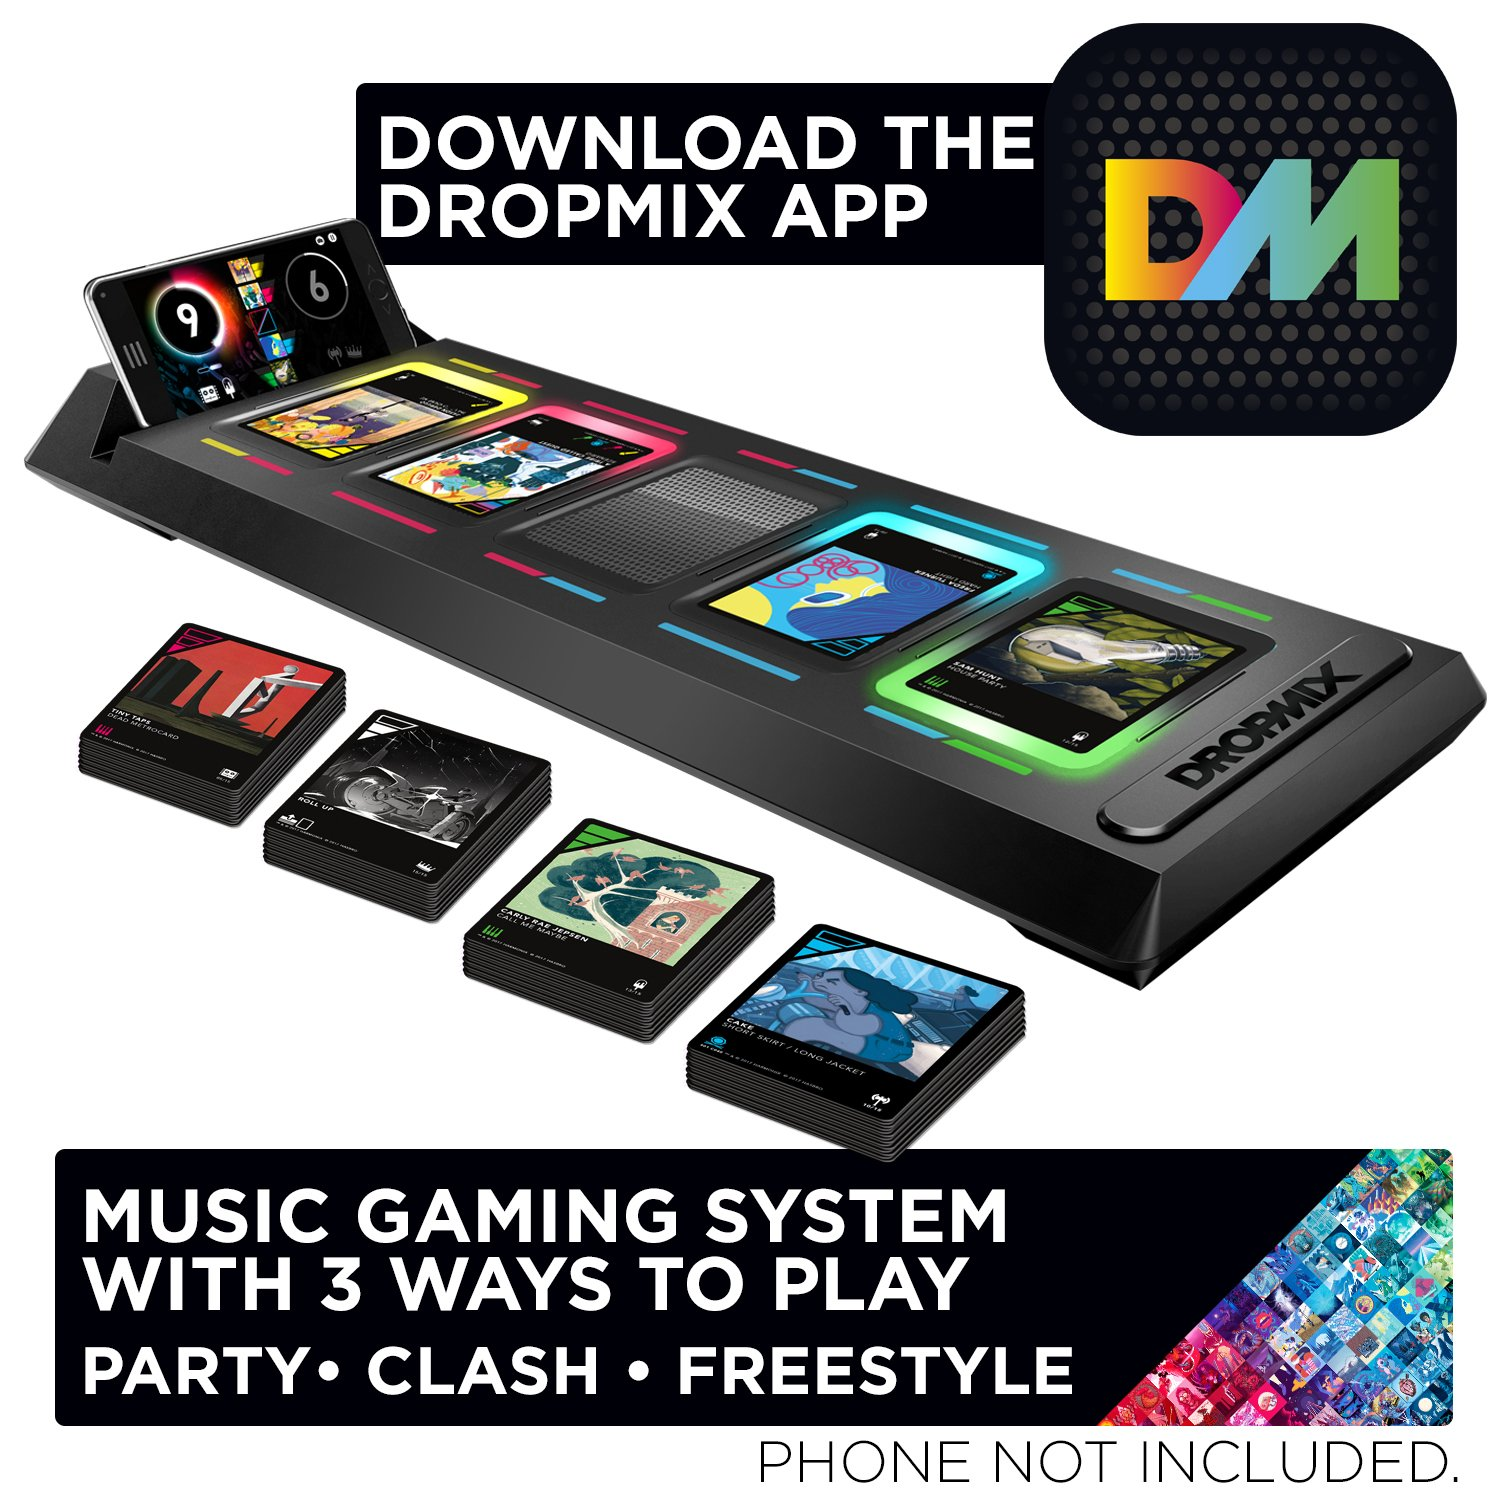 Dropmix Music Gaming System Toys Games Which Brings Me To Wiring Mixshop Doesn39t Give Much More Detail